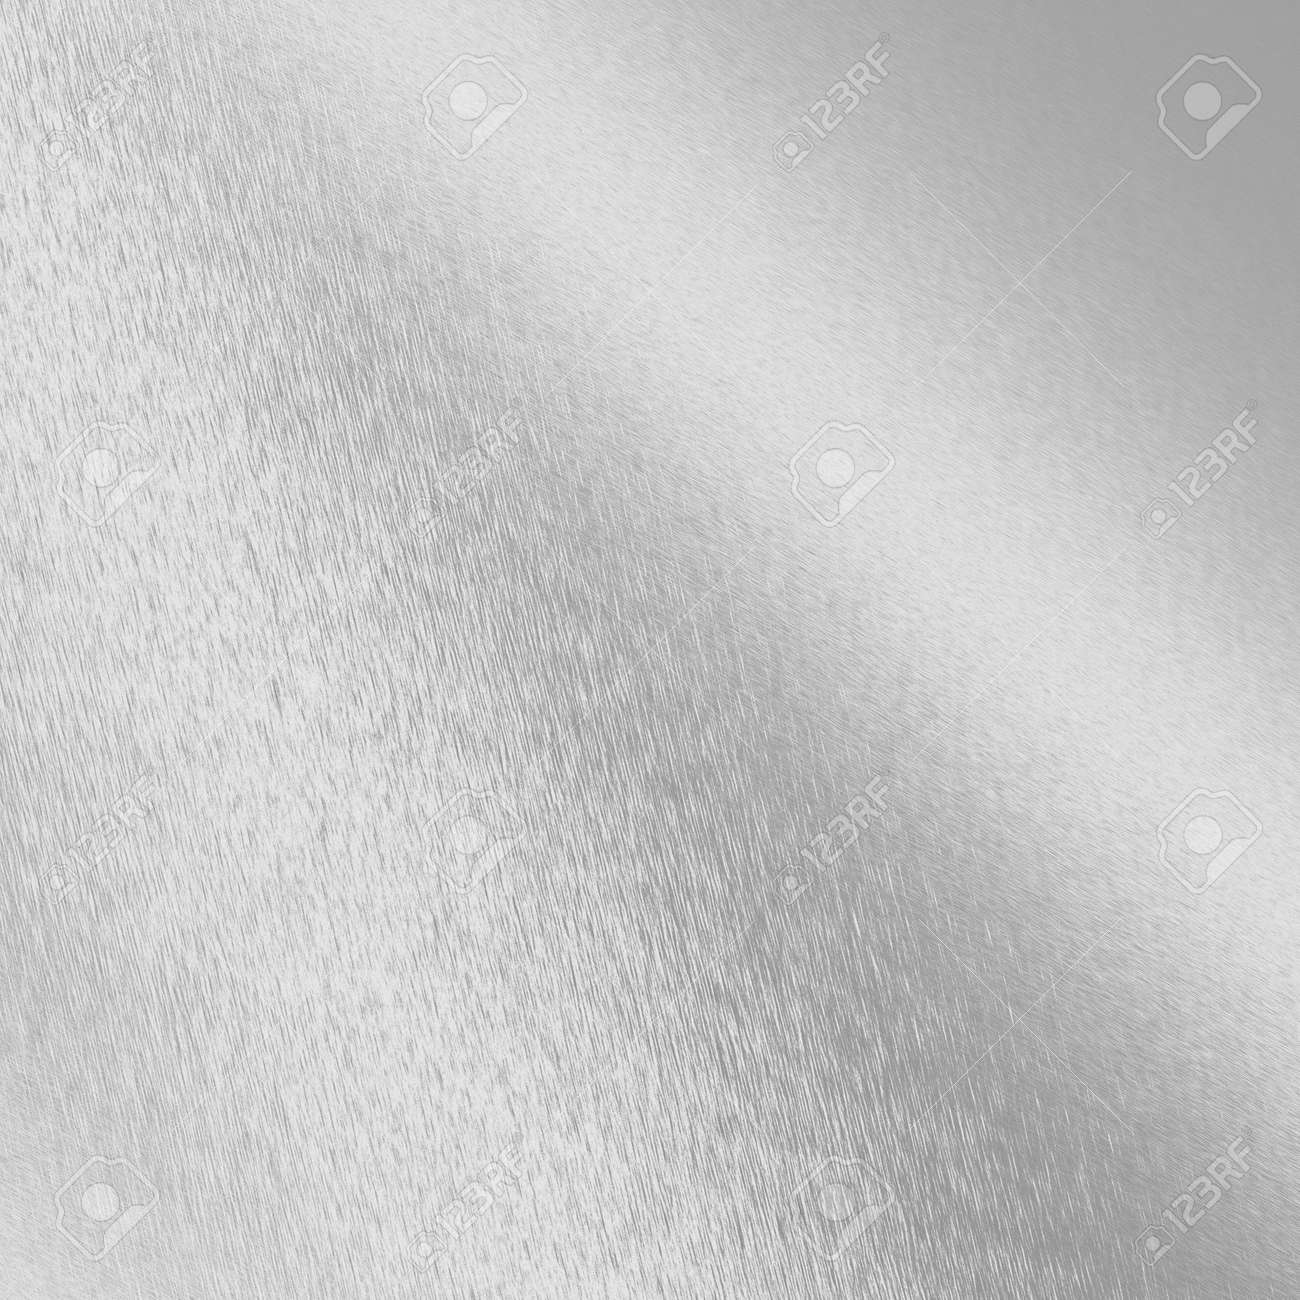 white or silver metal texture chrome metal panel or plate stock photo 18937495